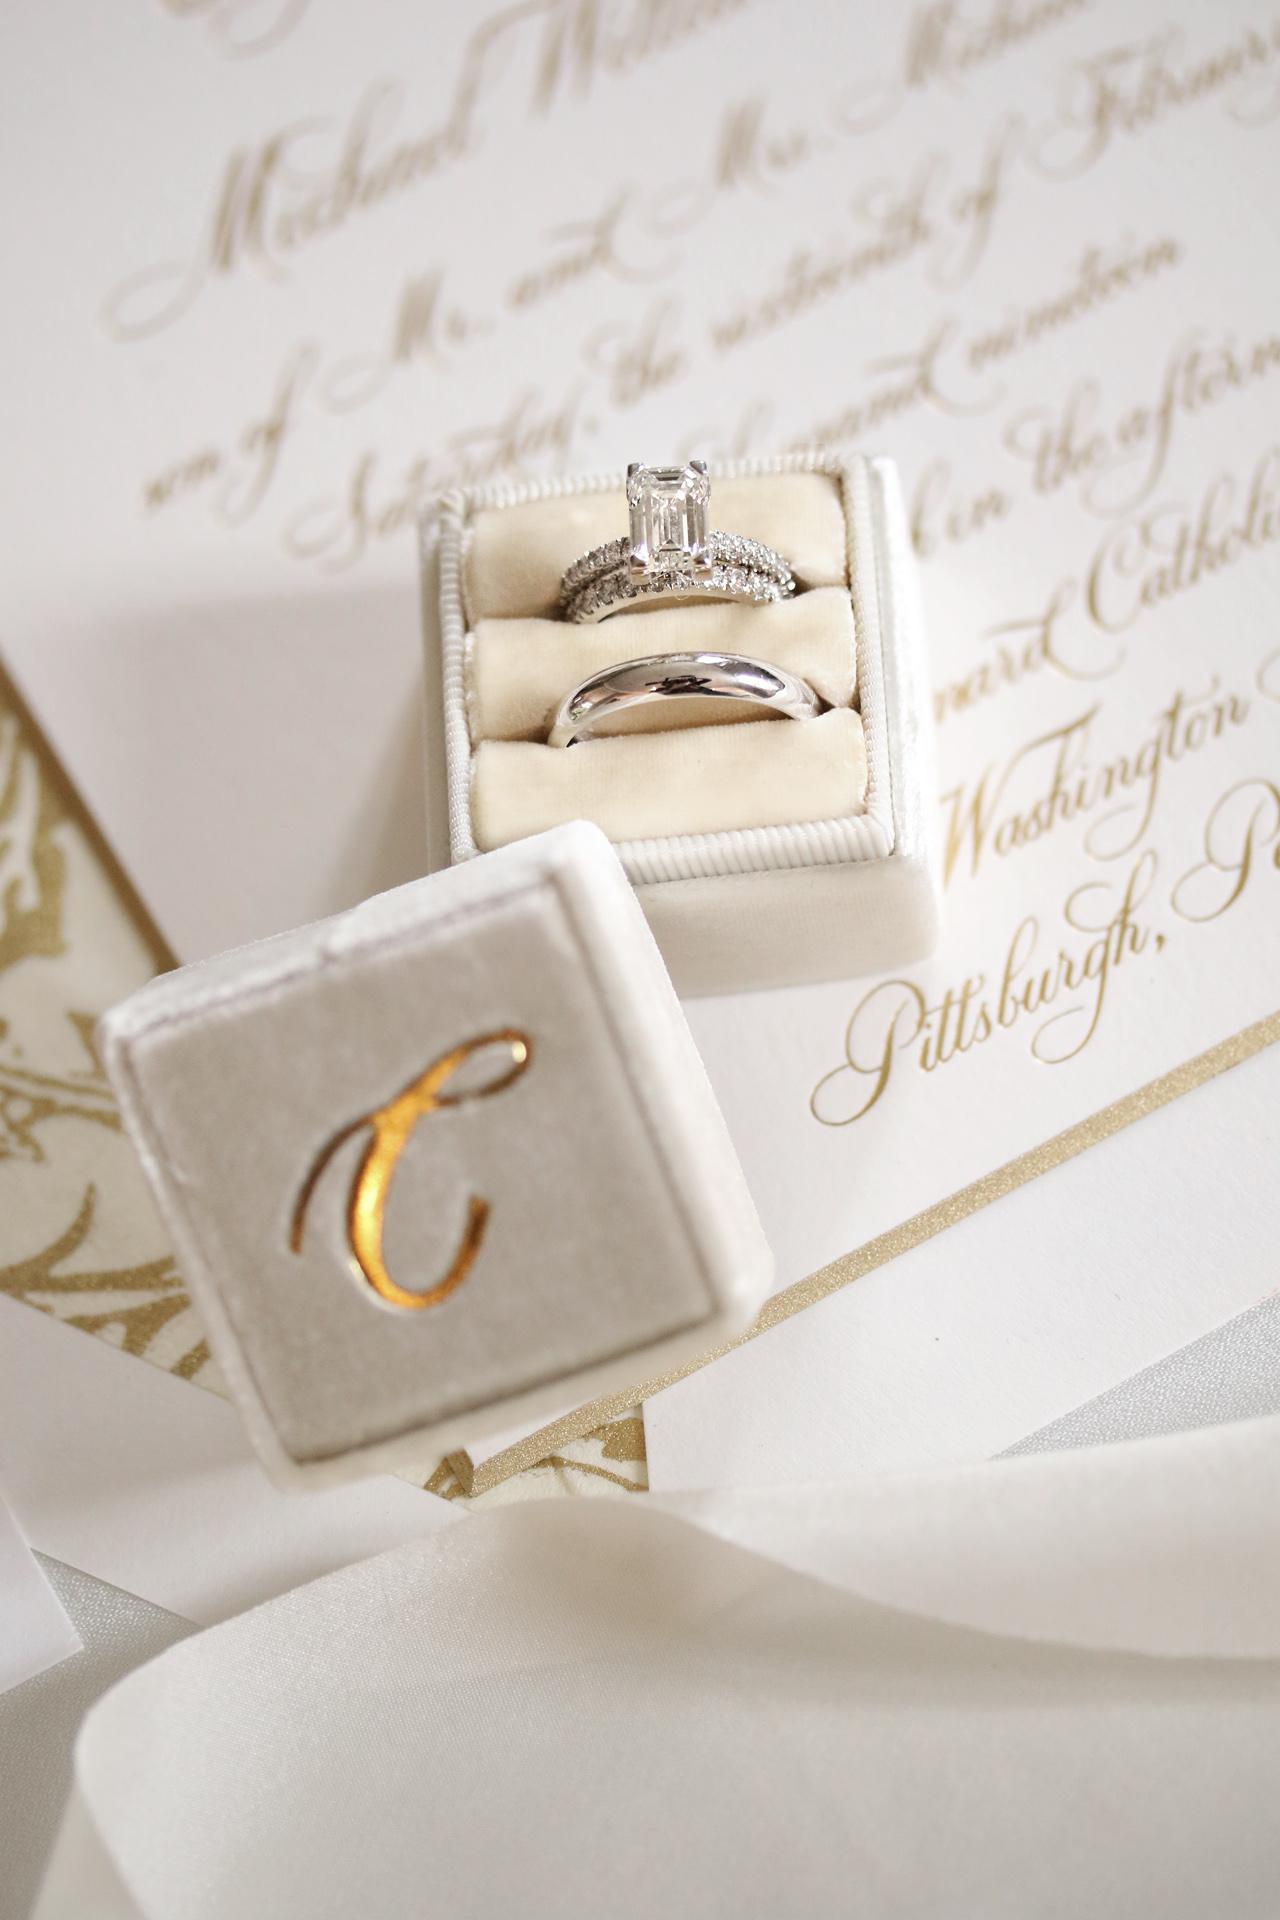 wedding rings sitting on an invitation